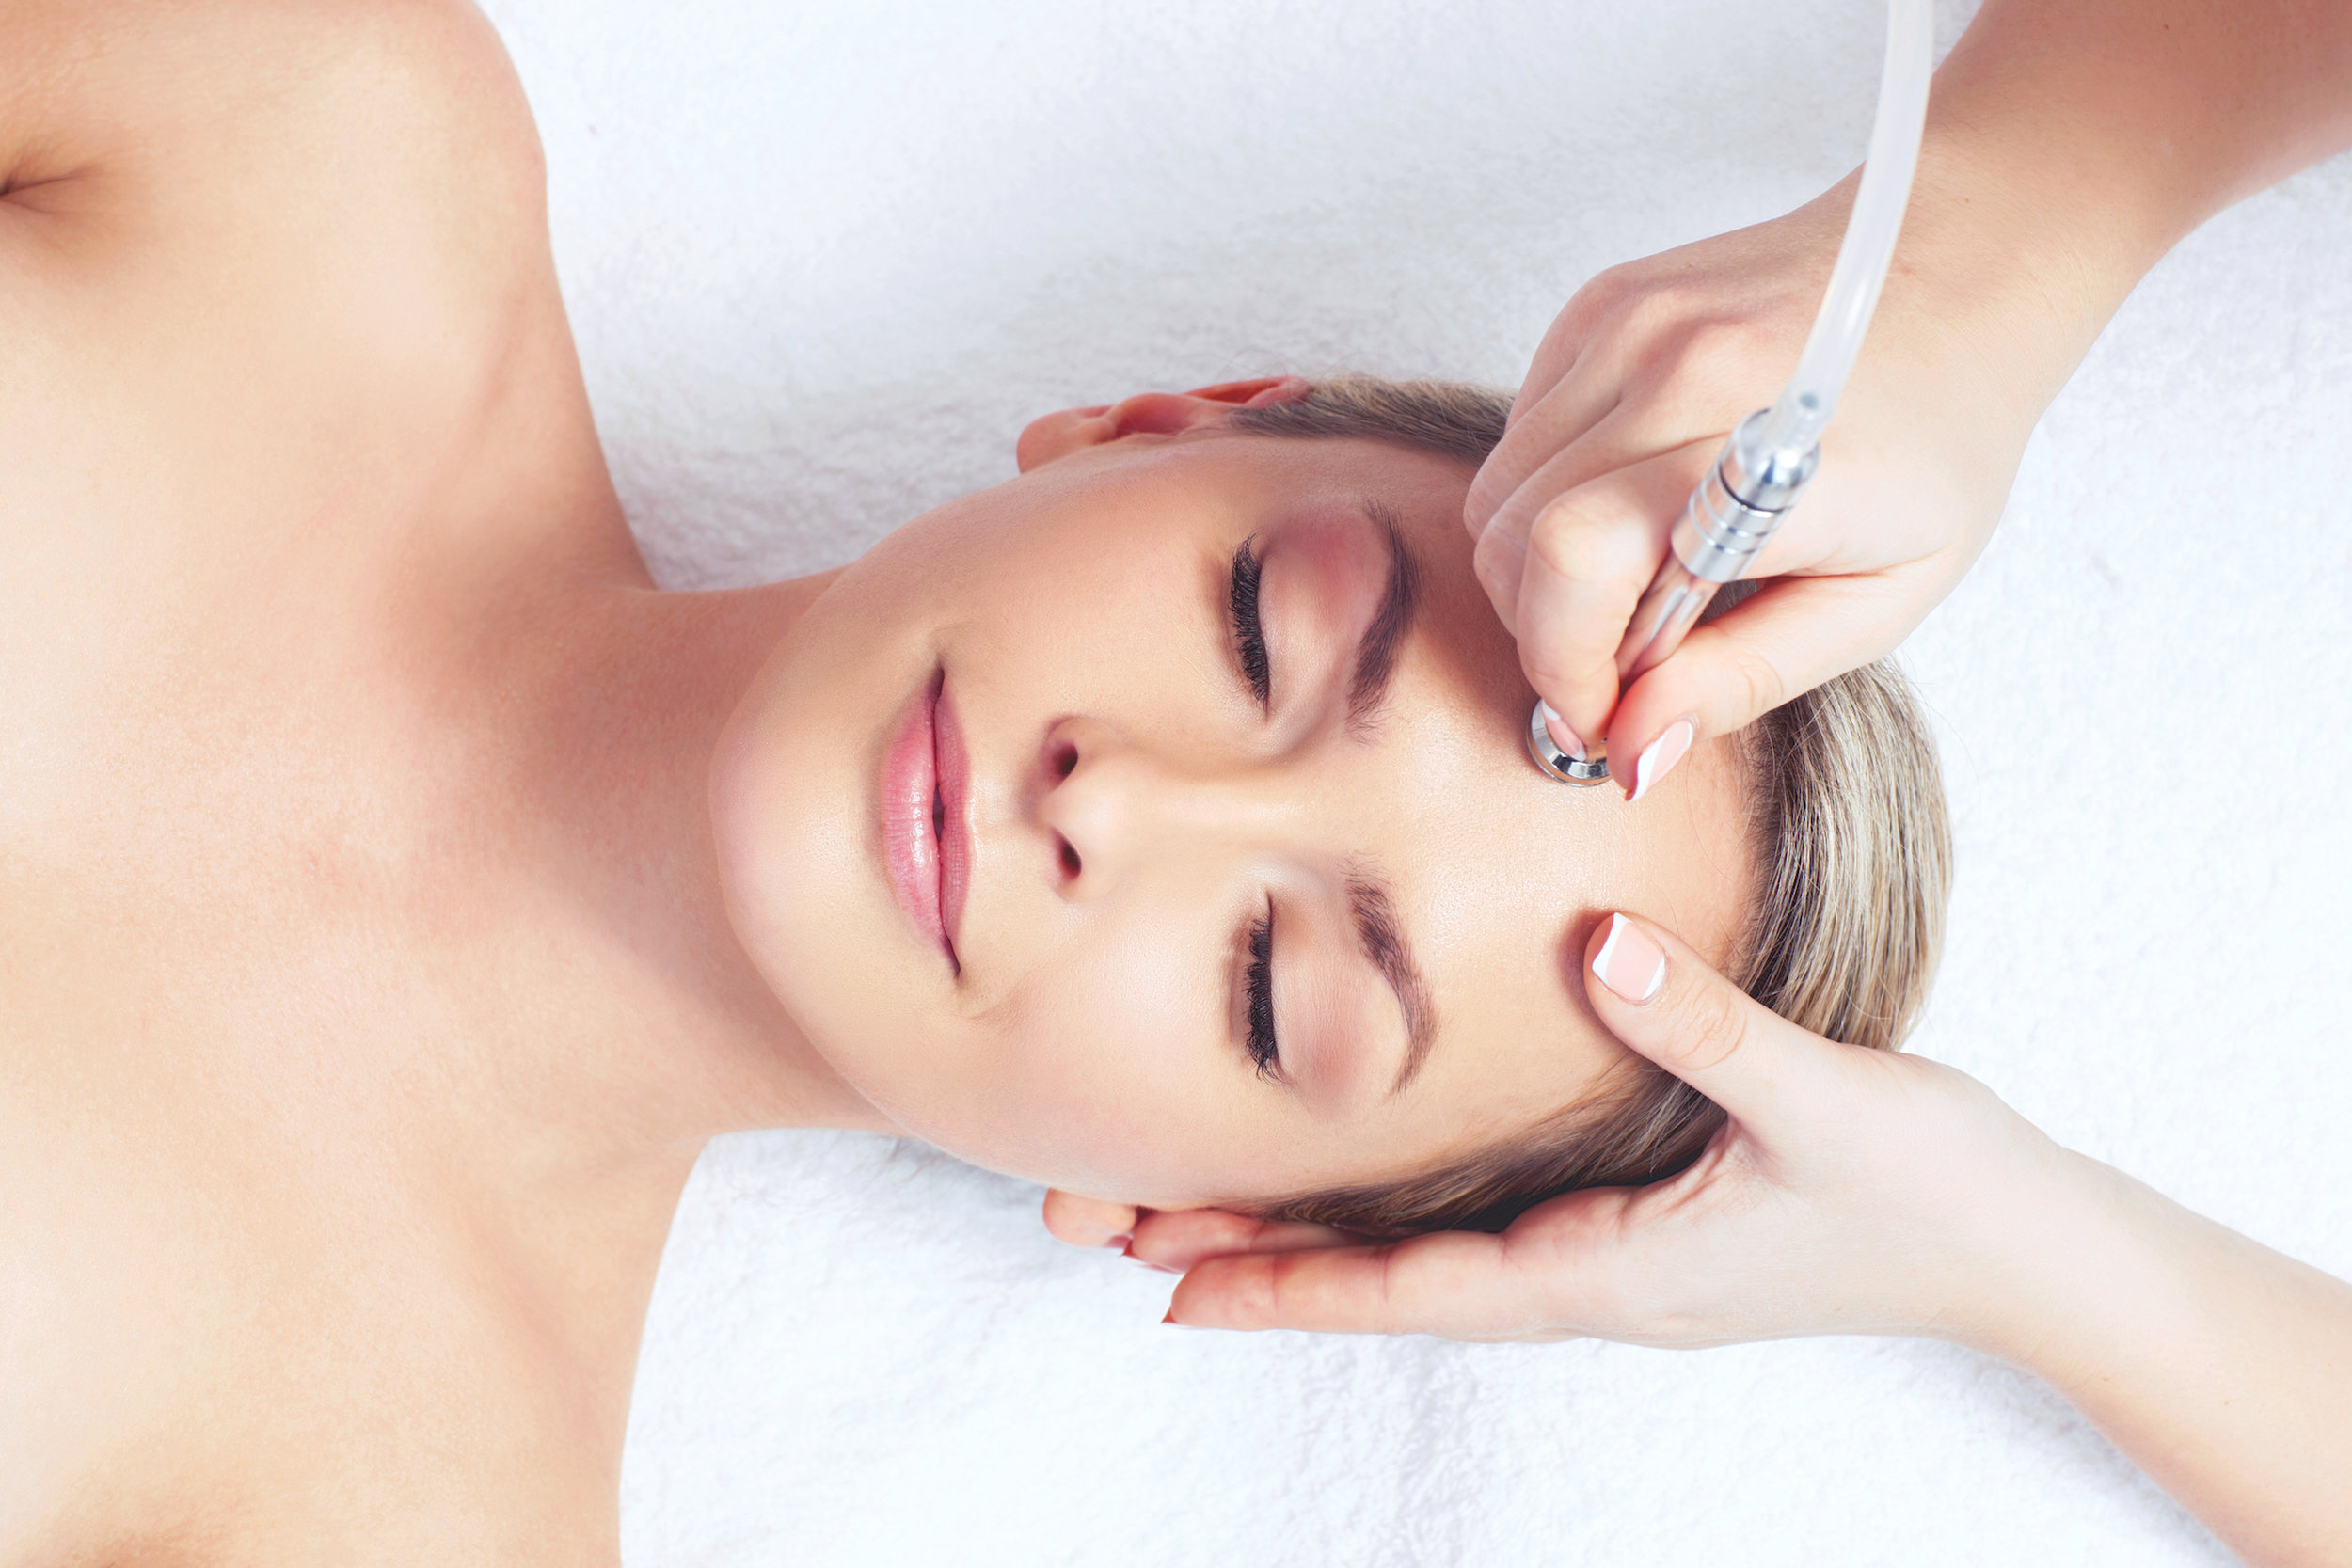 Exclusive Facials for all skin types - Customized facials to meet your skins' needs.